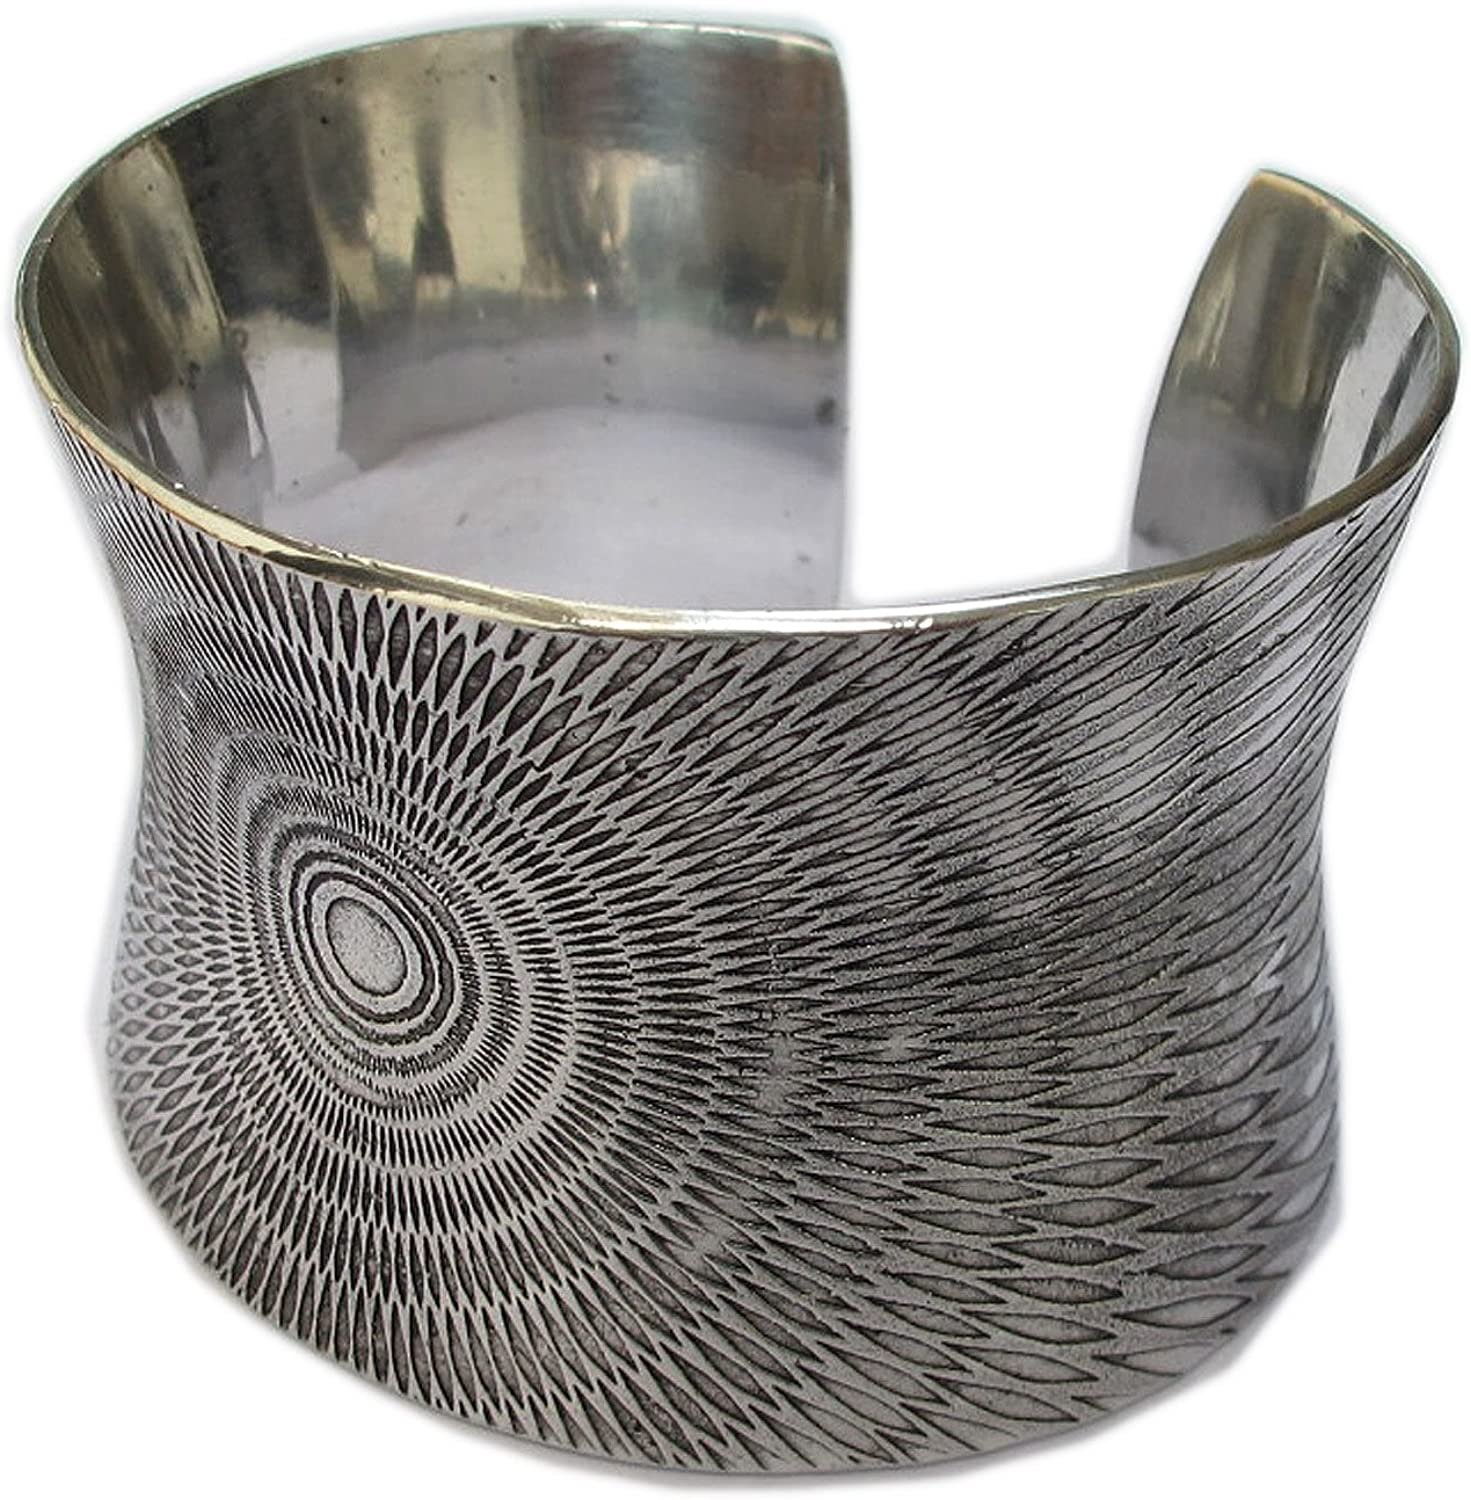 BEAUTIFUL SILVER TONE BRACELET SIZE HEIGHT 2.01 DIAMETER 2.50 OPEN END ThaiJewelry COOOL!